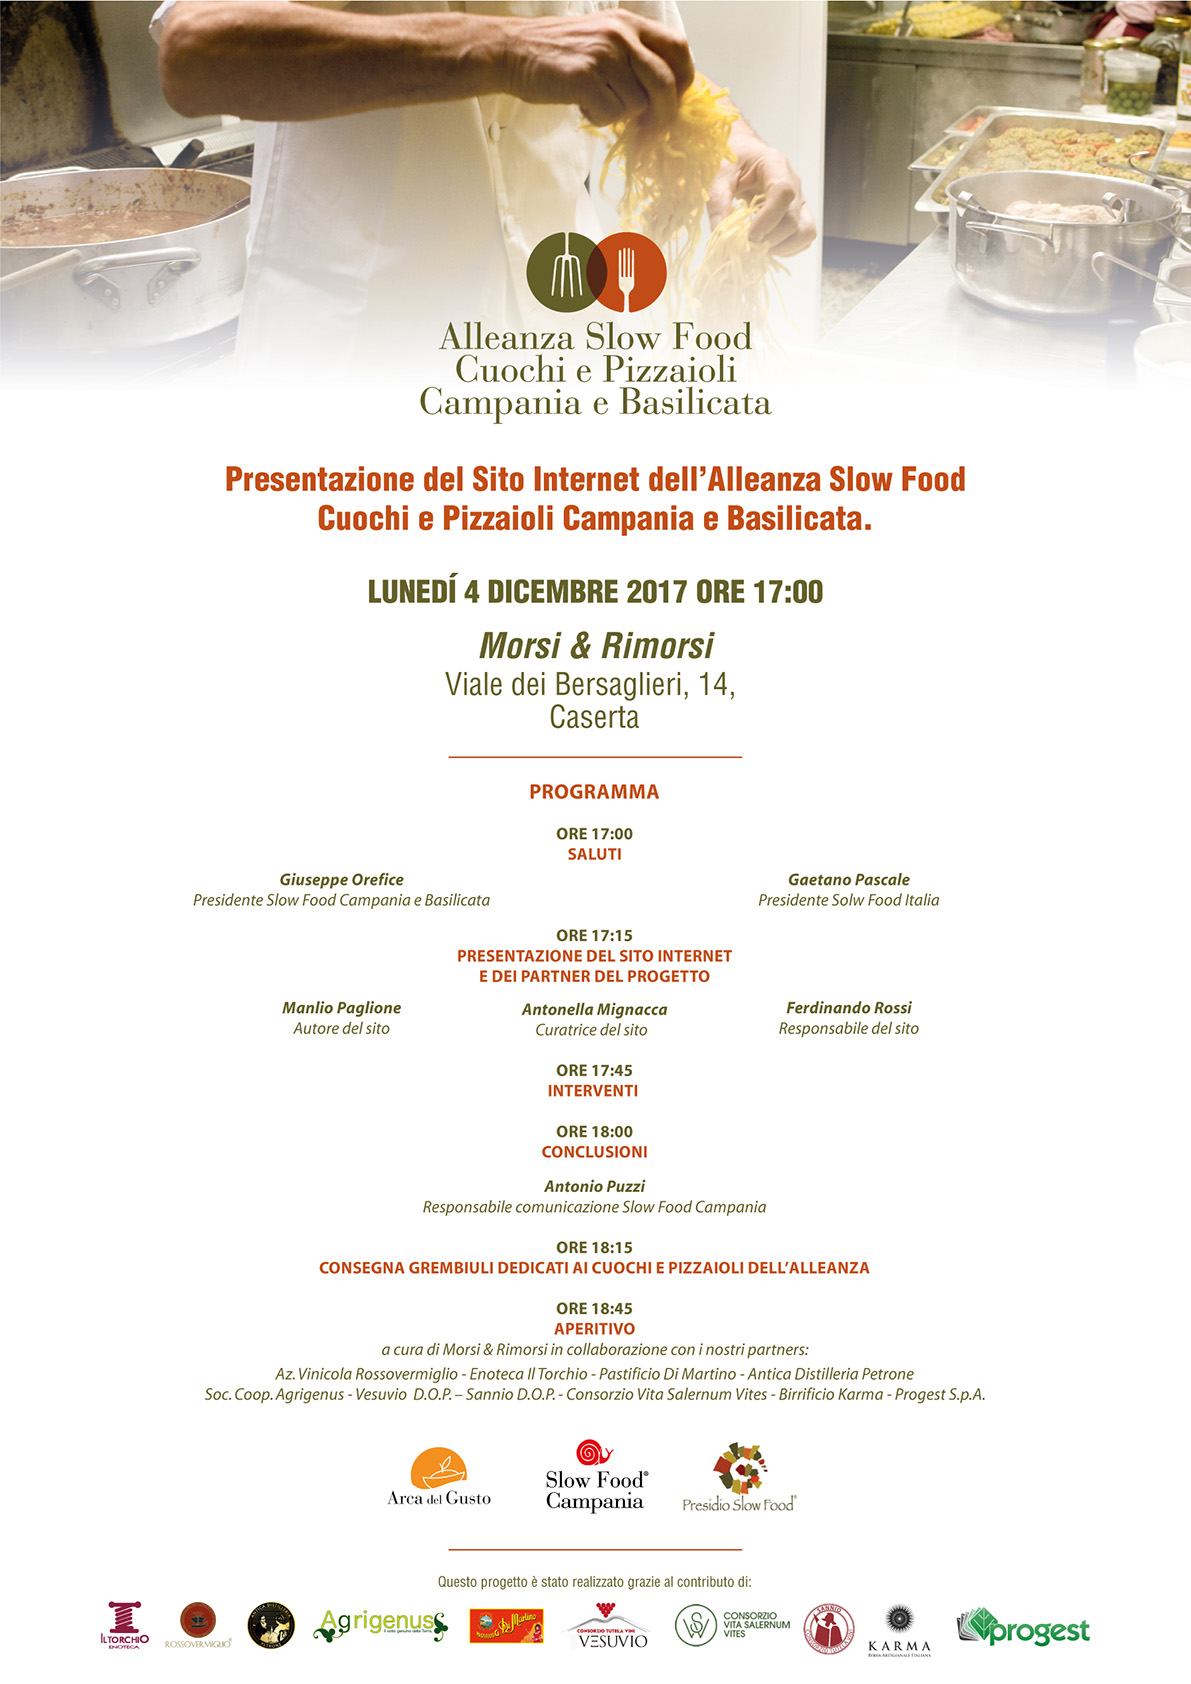 Alleanza Slow Food sito